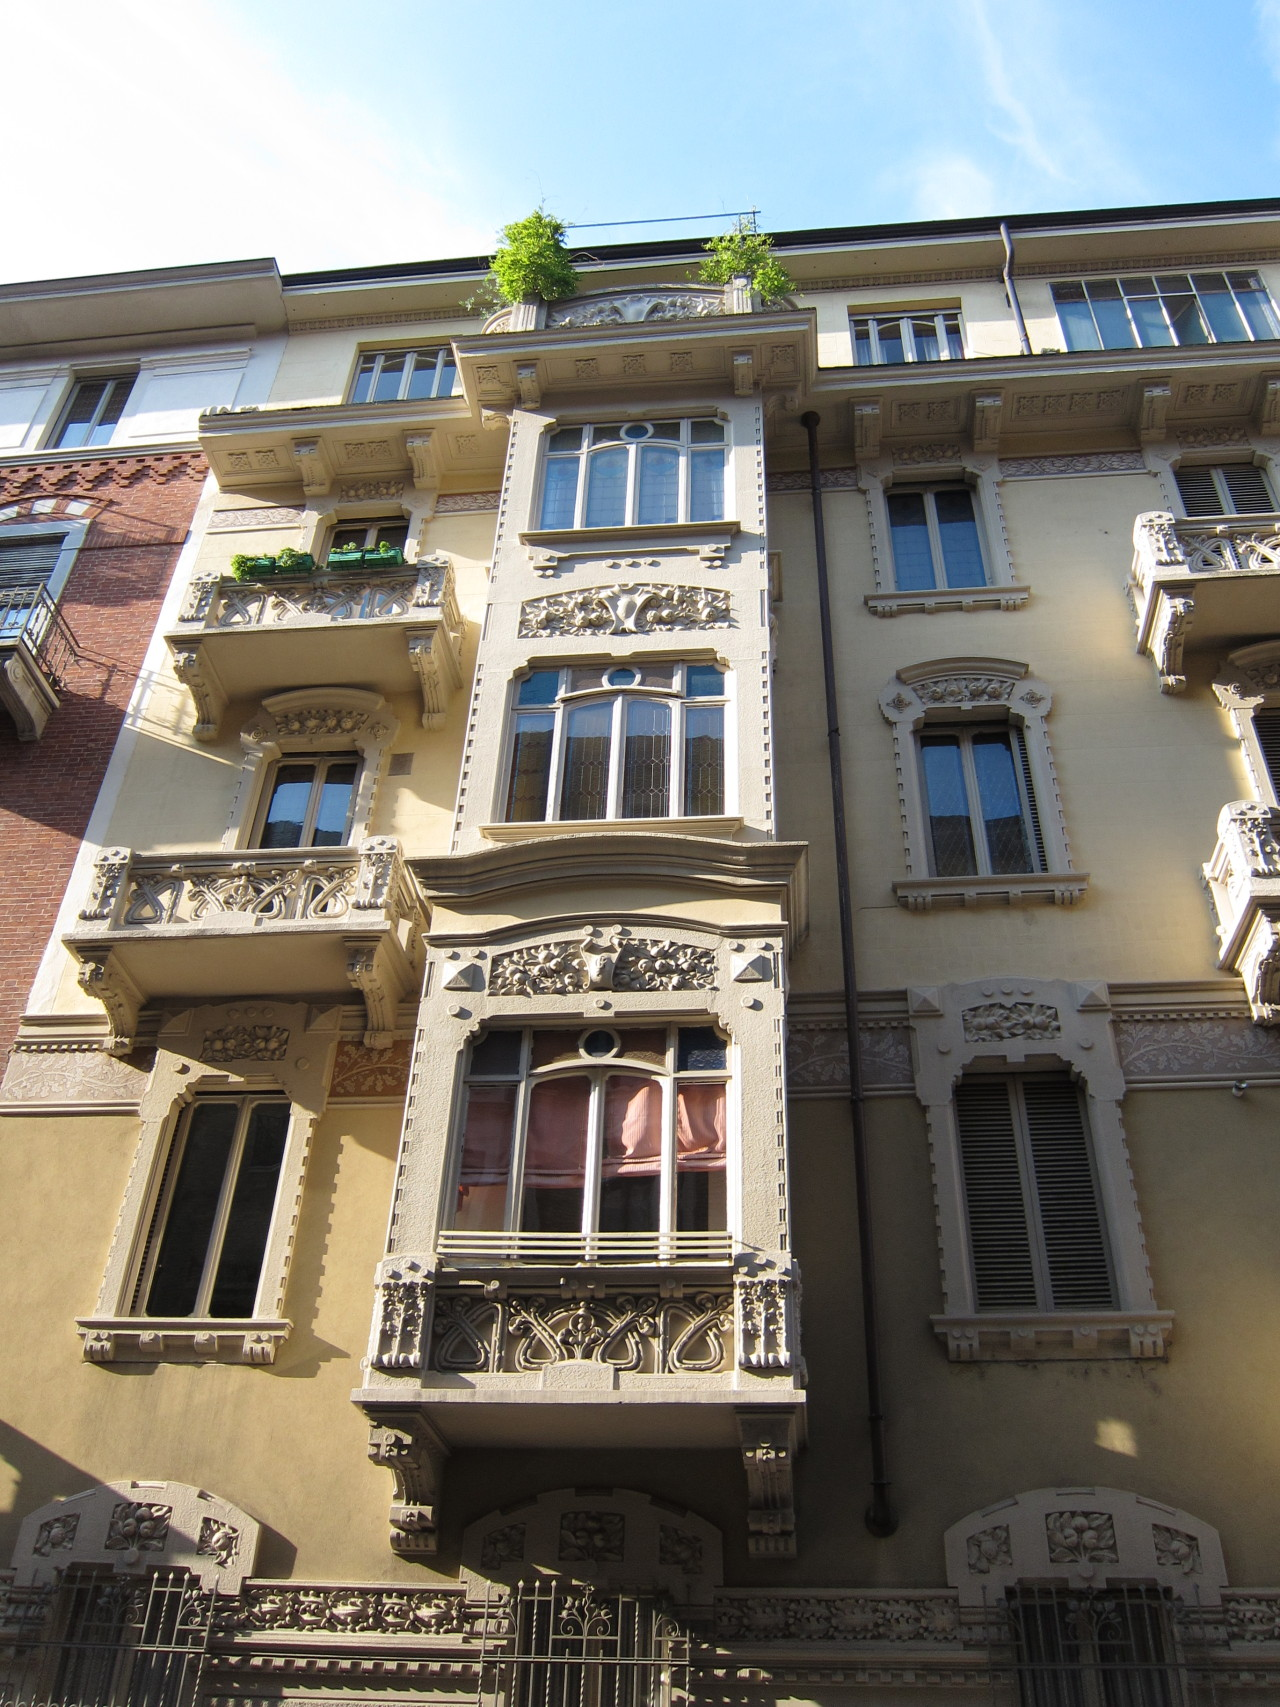 Stile Floreale (Art Nouveau) bay window in Turin, Italy.